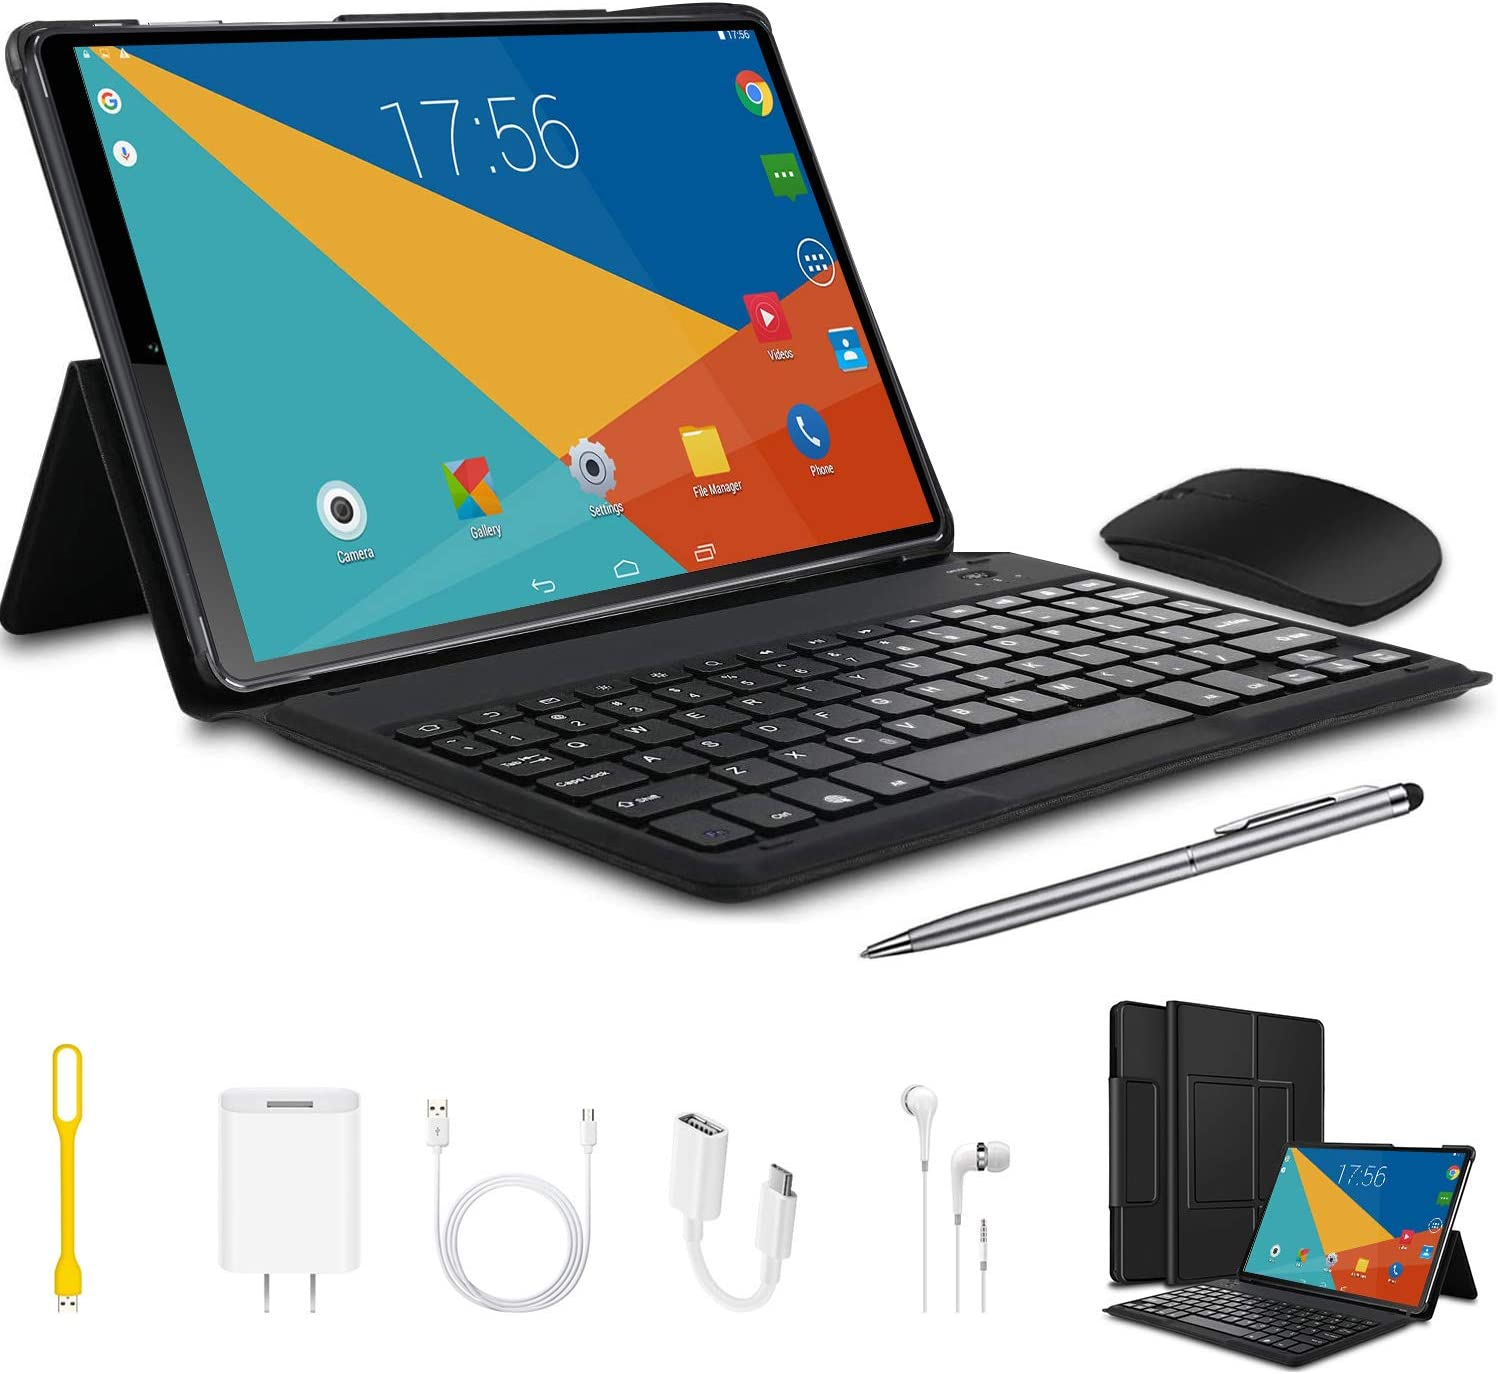 Tablets 10.1 inch 2 in 1 Android 9.0 Tablet with Keyboard 4GB RAM 64GB Storage,8MP Dual Camera Dual SIM 1920 x1200 IPS HD Touchscreen-Black